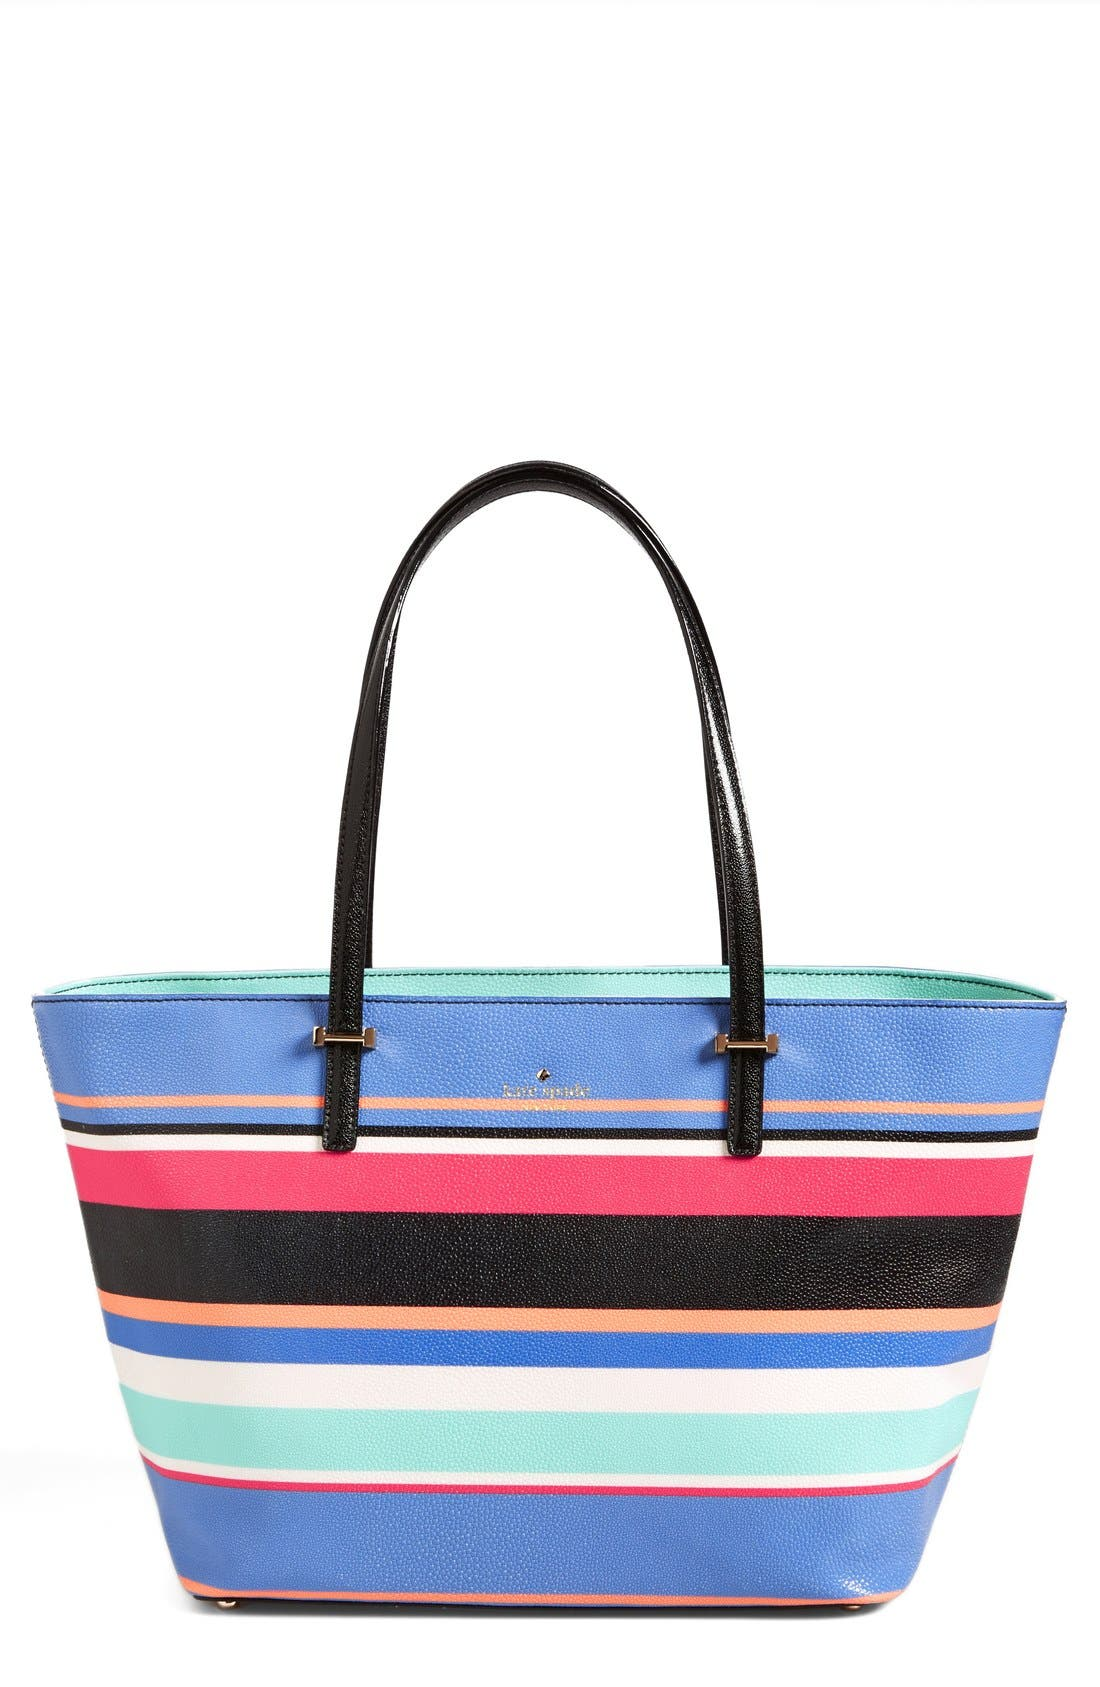 Main Image - kate spade new york 'cedar street stripe - small harmony' tote